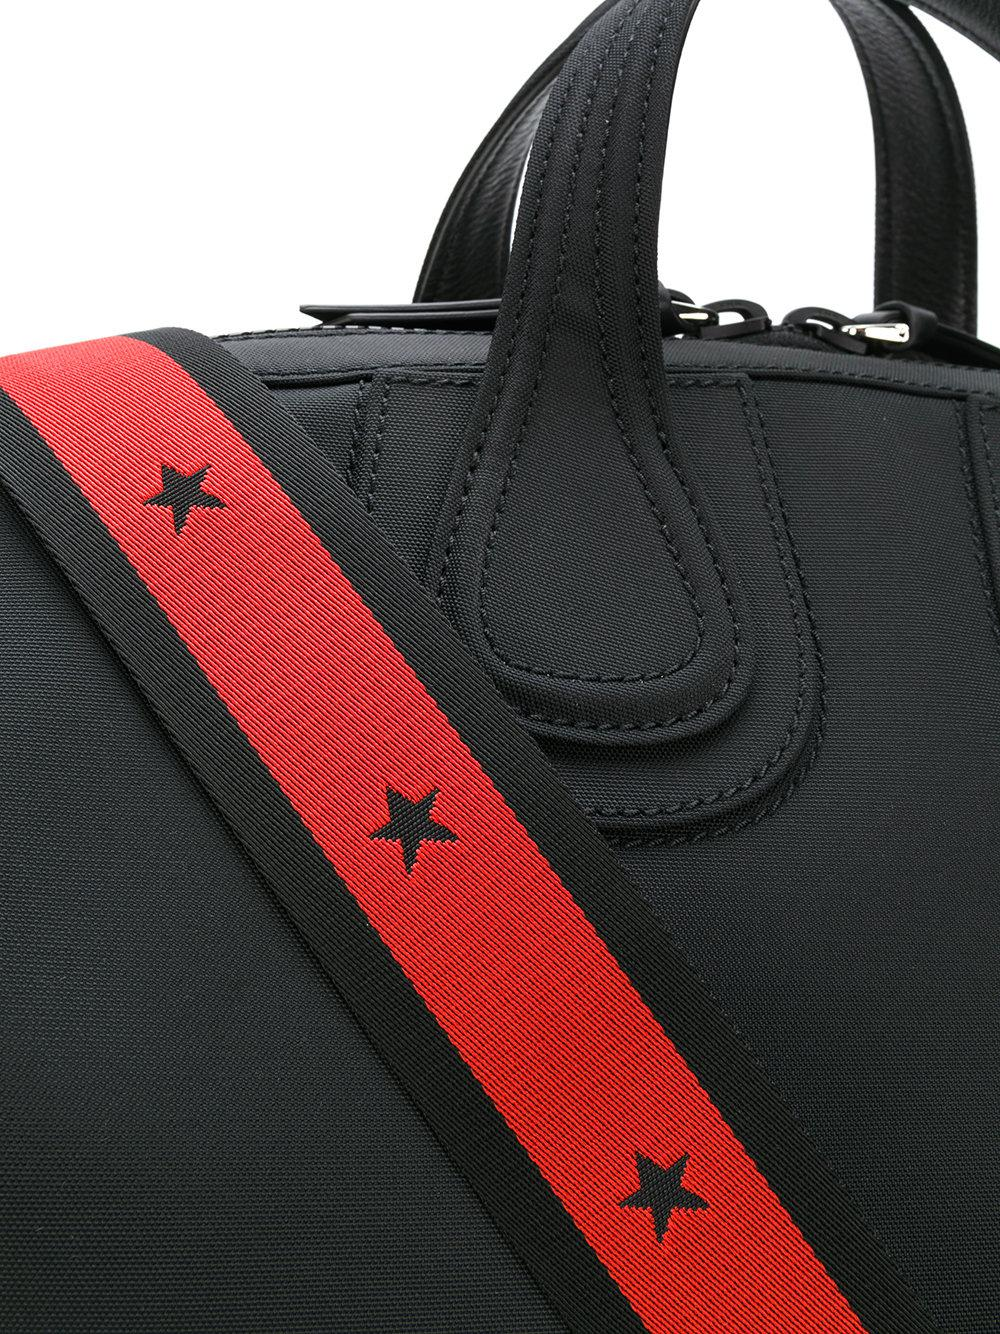 6f0f1a7e88c1 Givenchy - Black Nightingale Holdall Tote for Men - Lyst. View fullscreen